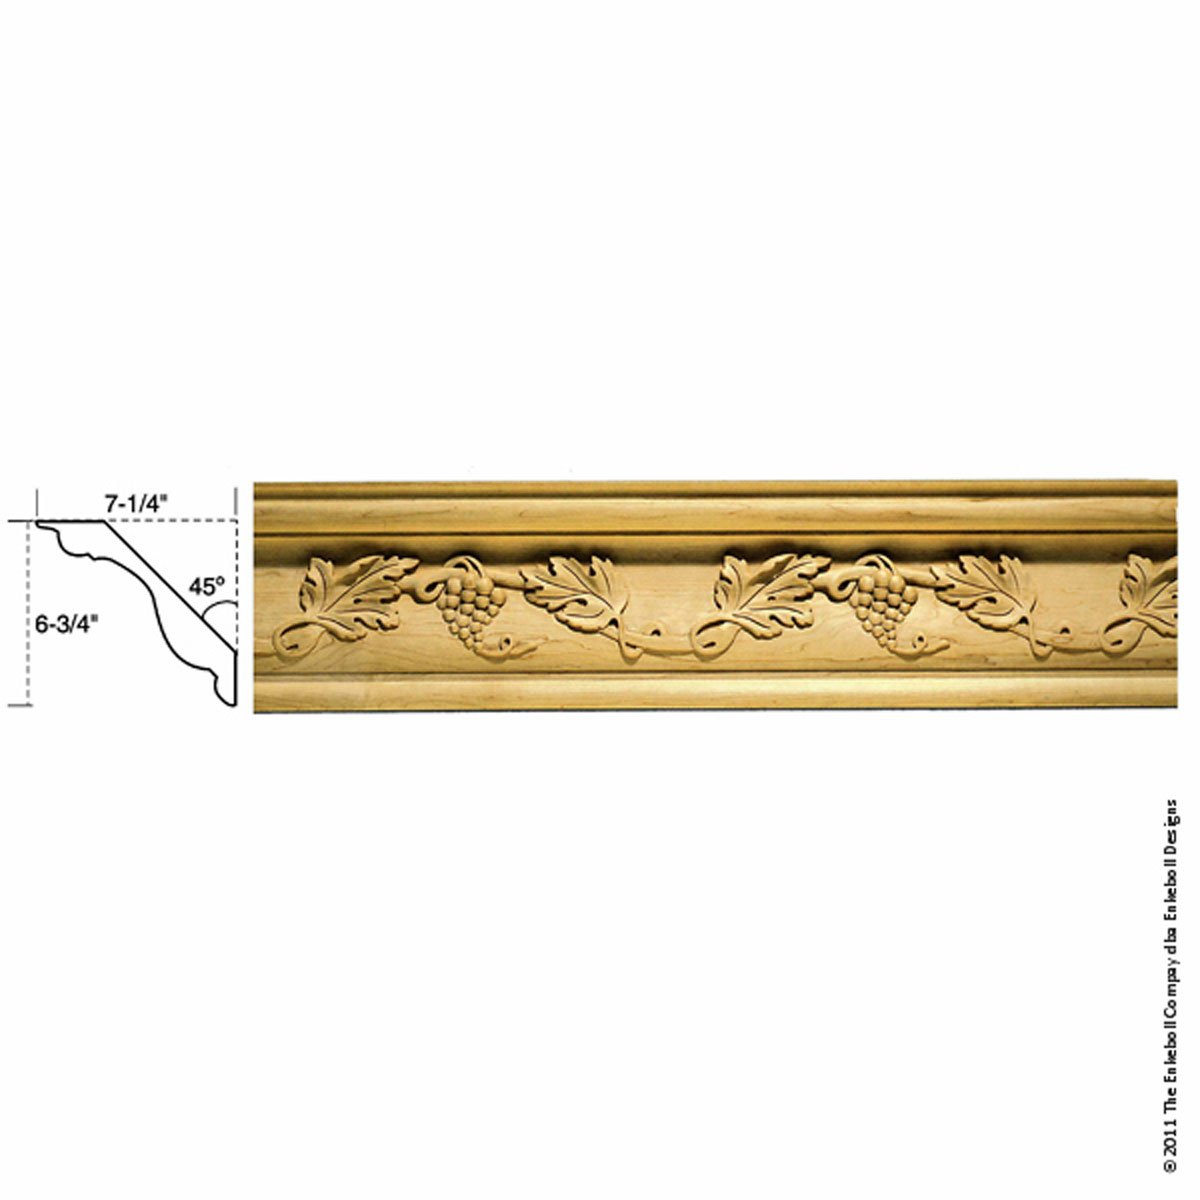 6 3/4''W x 7 1/4''P, 18'' Repeat, Molding Grape Crown, 8' Length, Maple by Enkeboll Designs